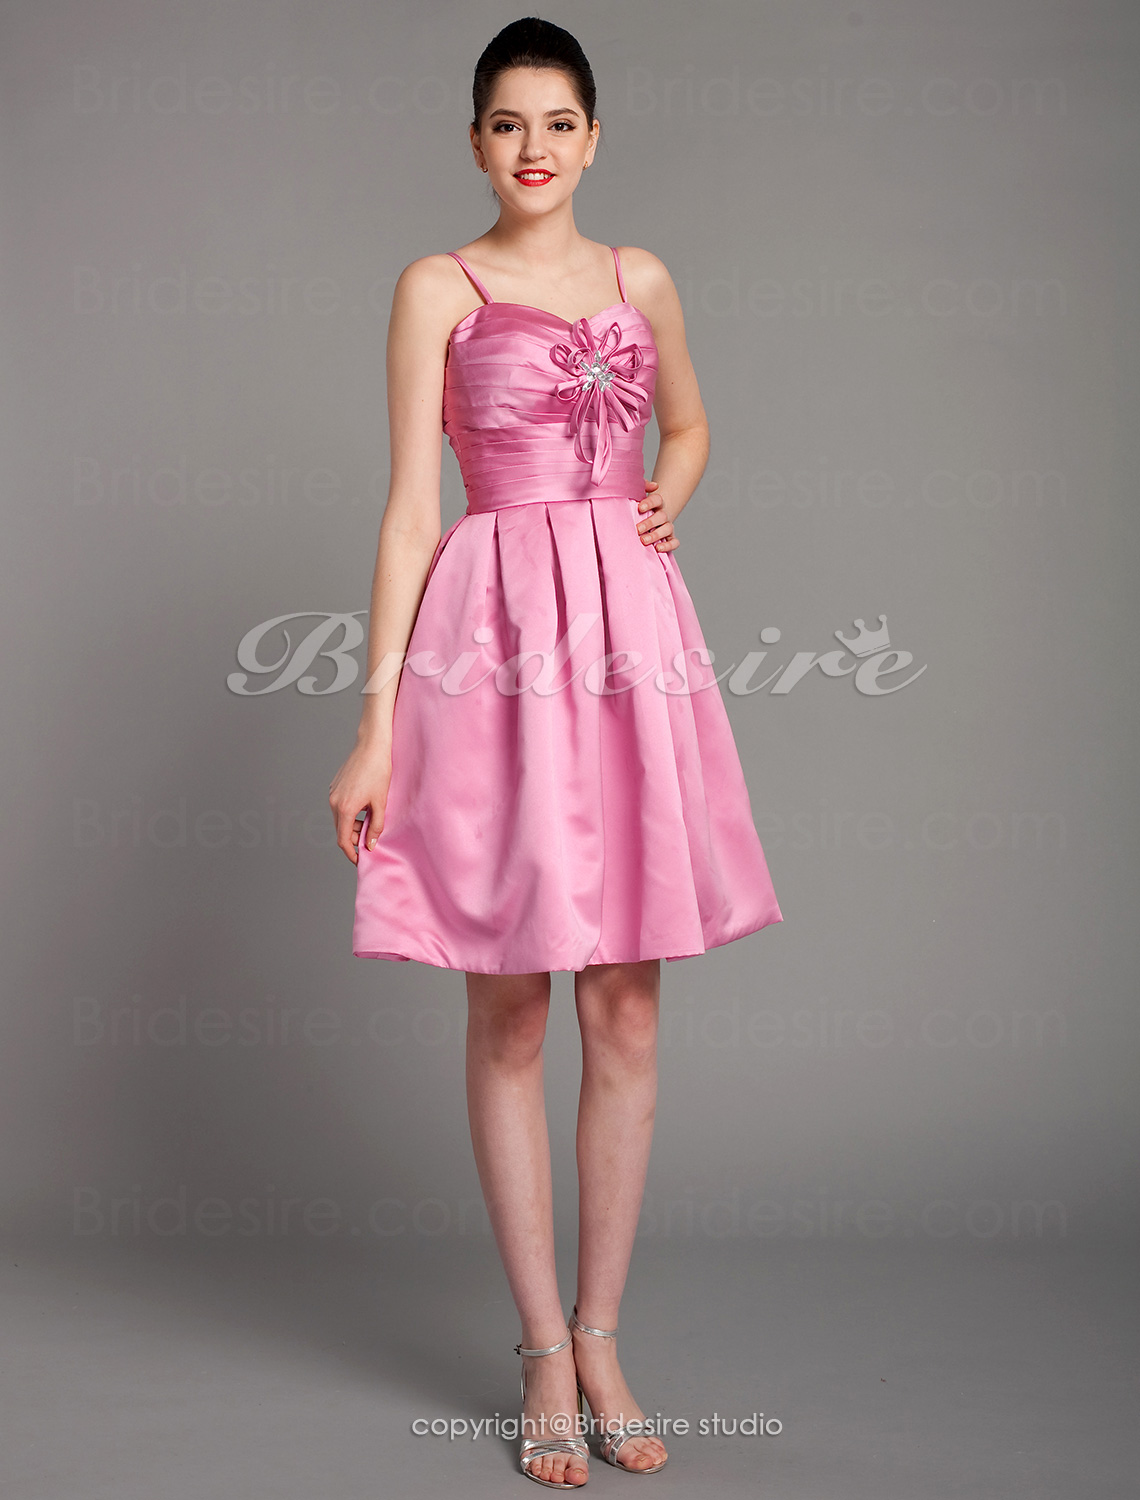 A-line Satin Knee-length Sweetheart Bridesmaid Dress With Criss Cross